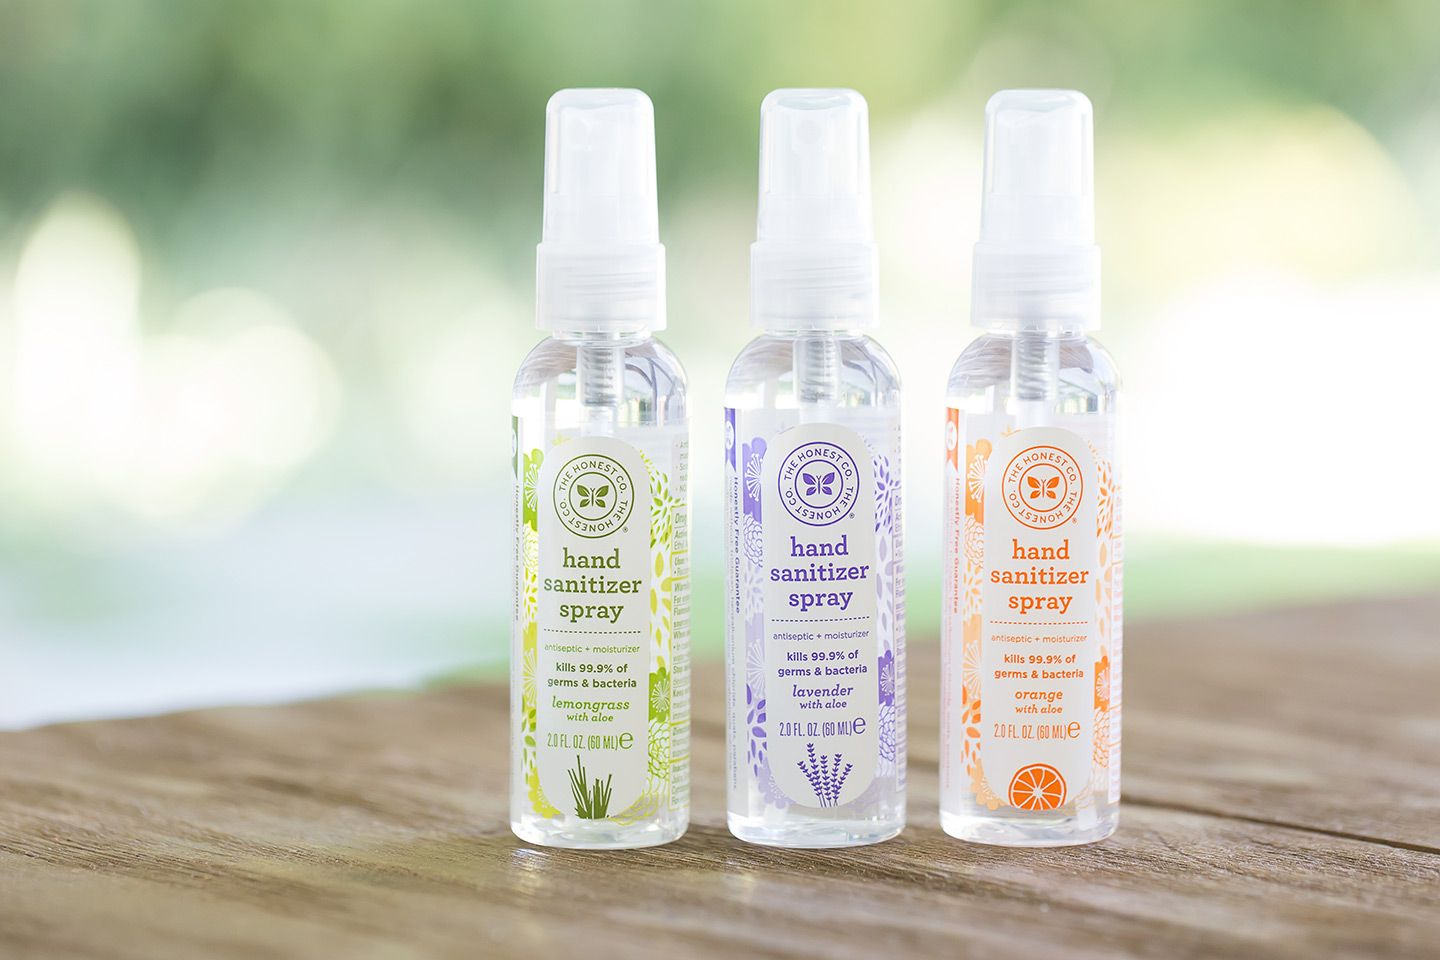 Hand Sanitizer Spray Hand Sanitizer Natural Hand Sanitizer